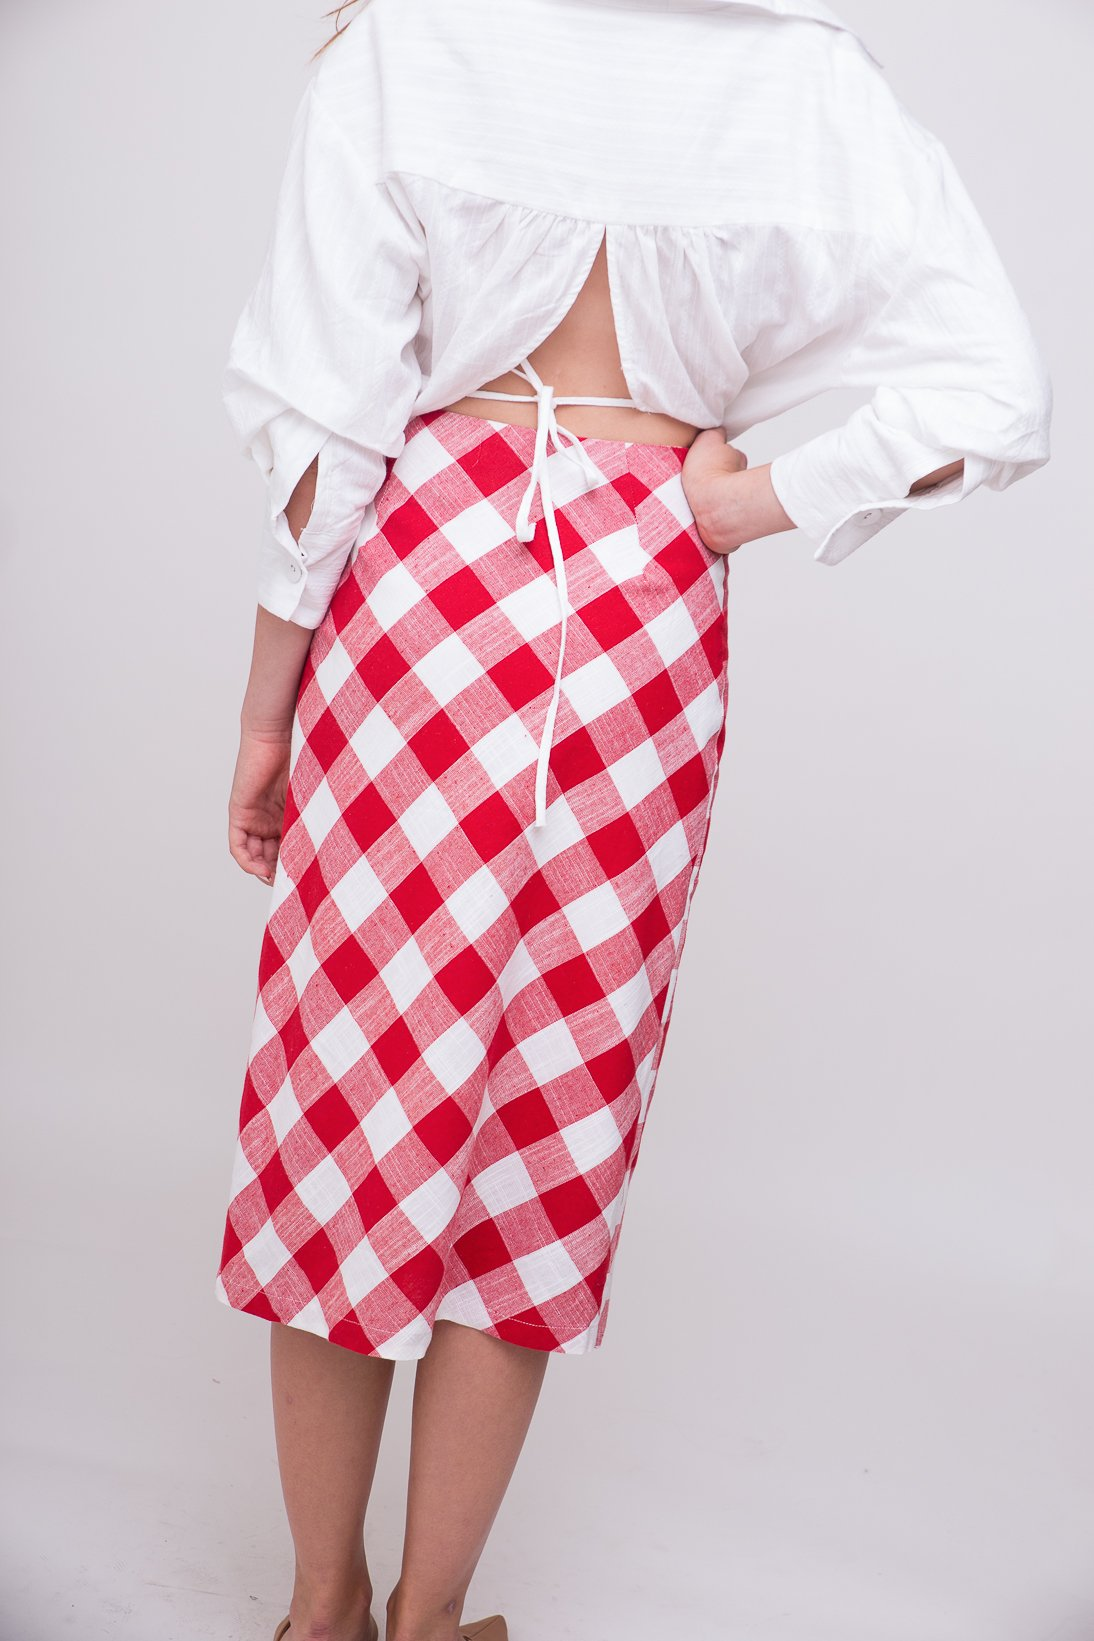 Red and white checkered, playful, midi skirt.